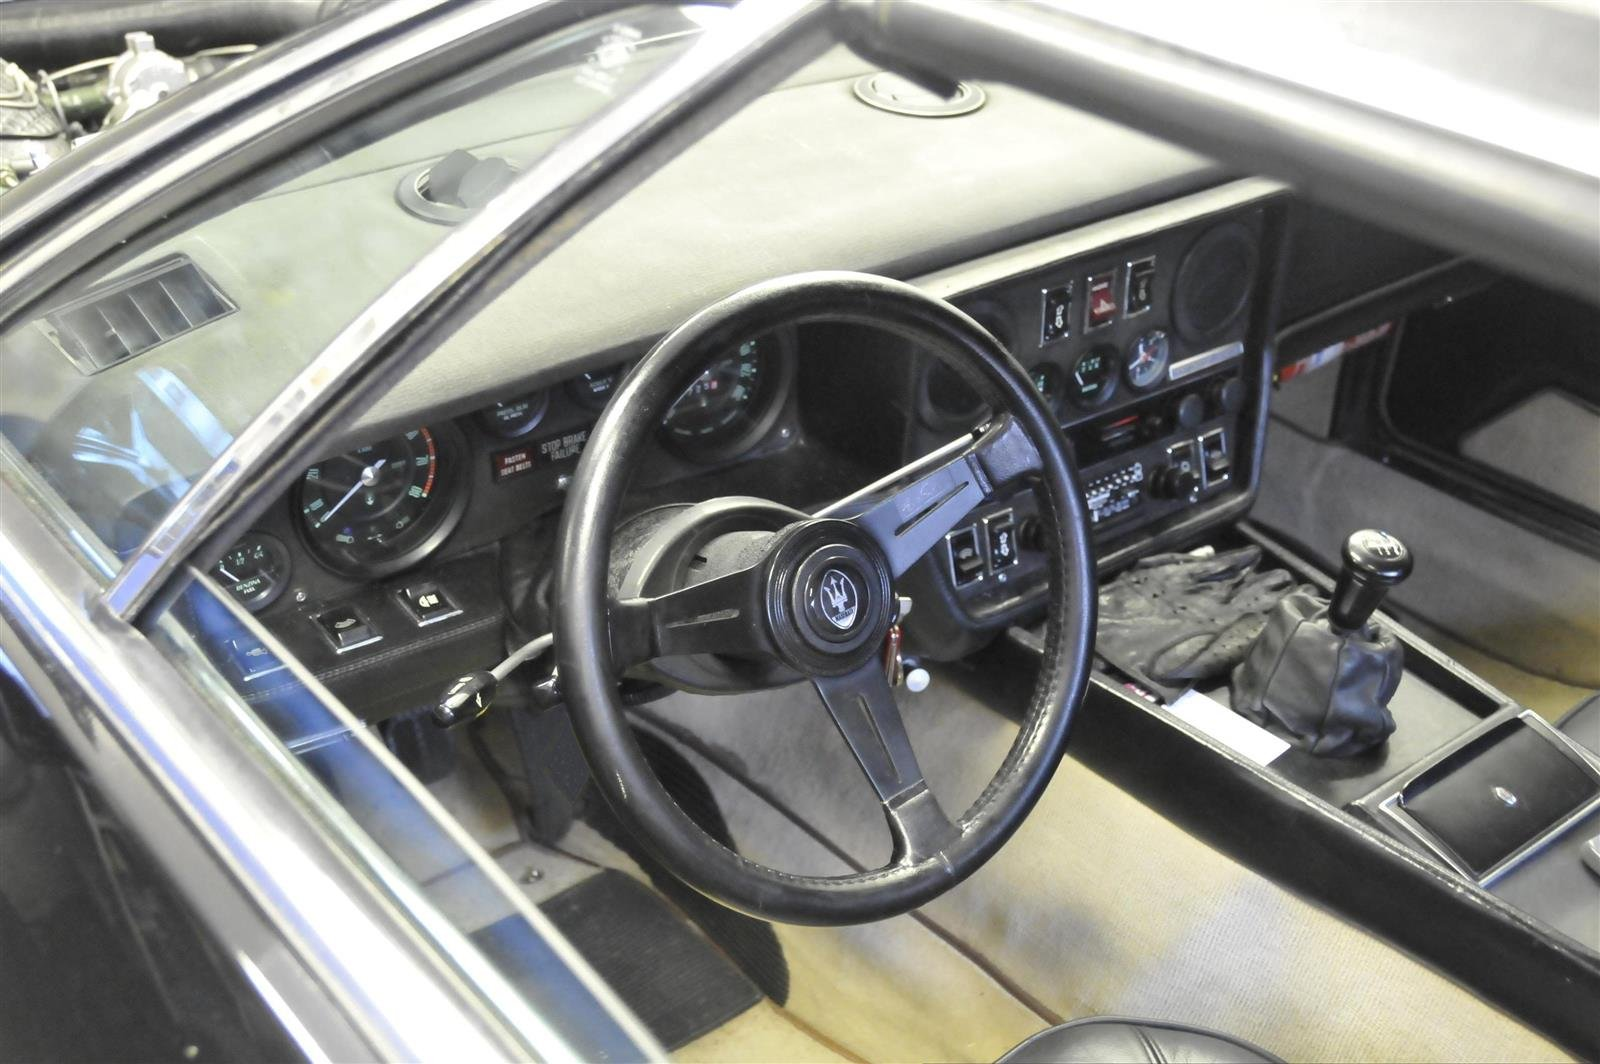 1977 Maserati Khamsin T-Top - Open One Off For Sale (picture 5 of 6)